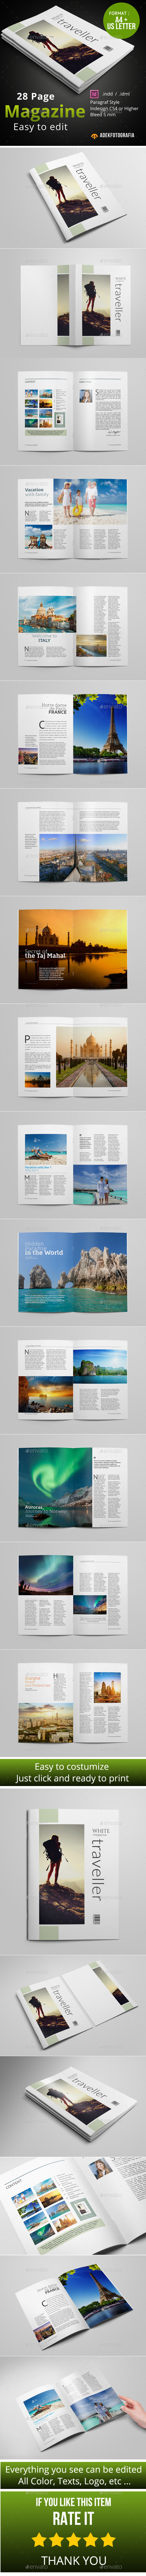 GraphicRiver Indesign Magazine Template 8974040